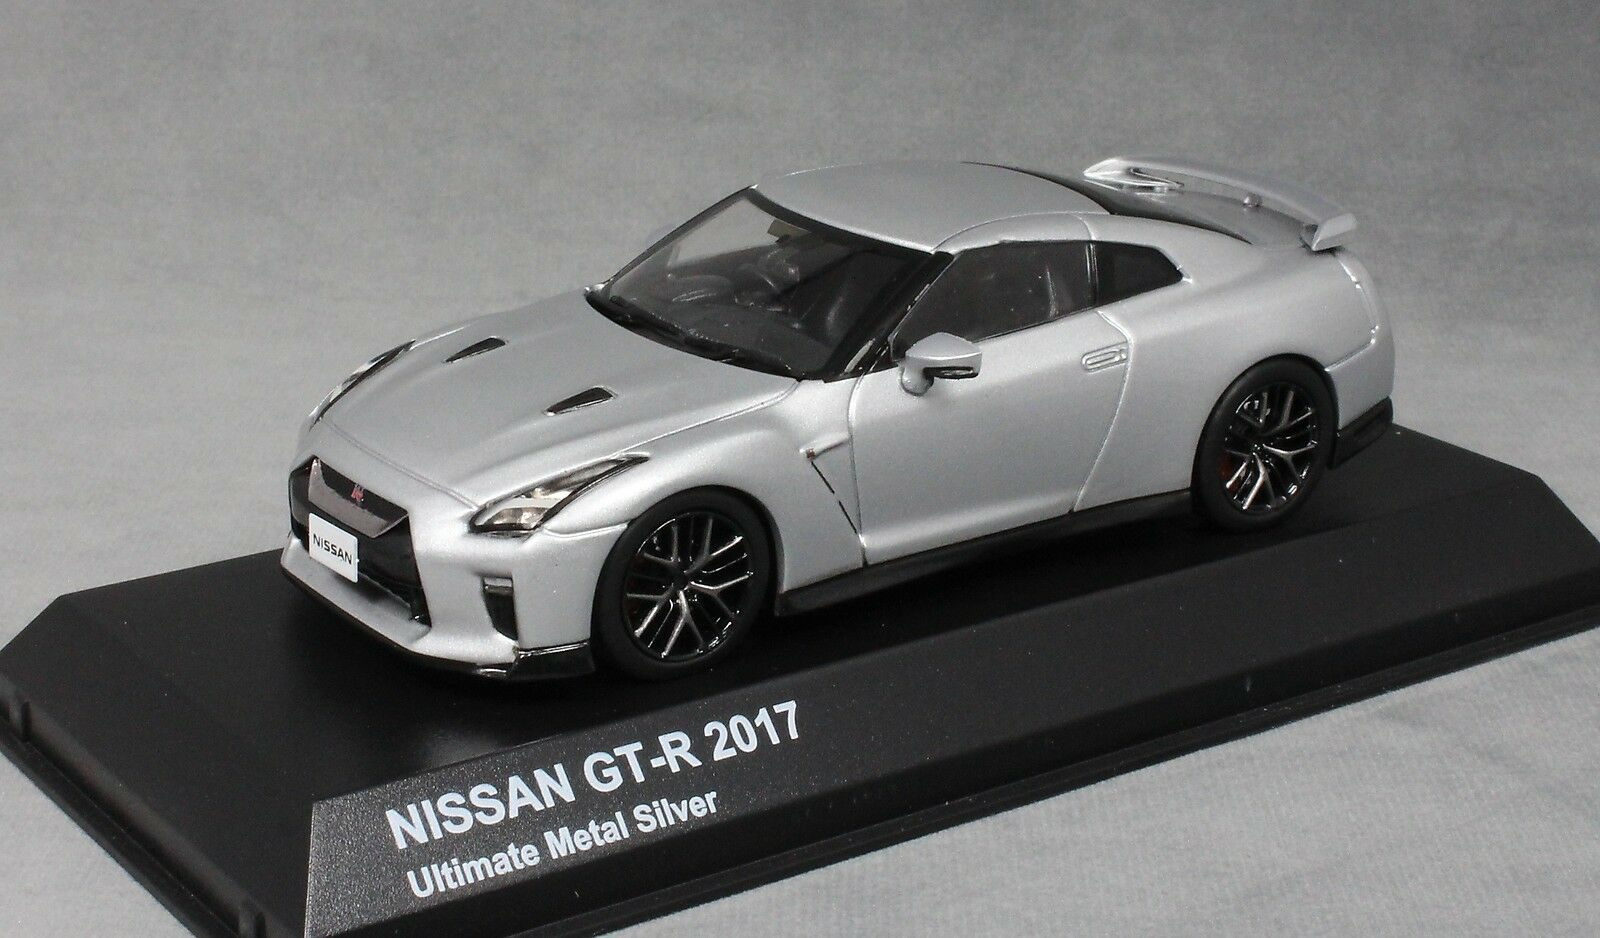 KYOSHO NISSAN GT-R R35 in argento metallico Ultimate 2017 03893S 1 43 NUOVO